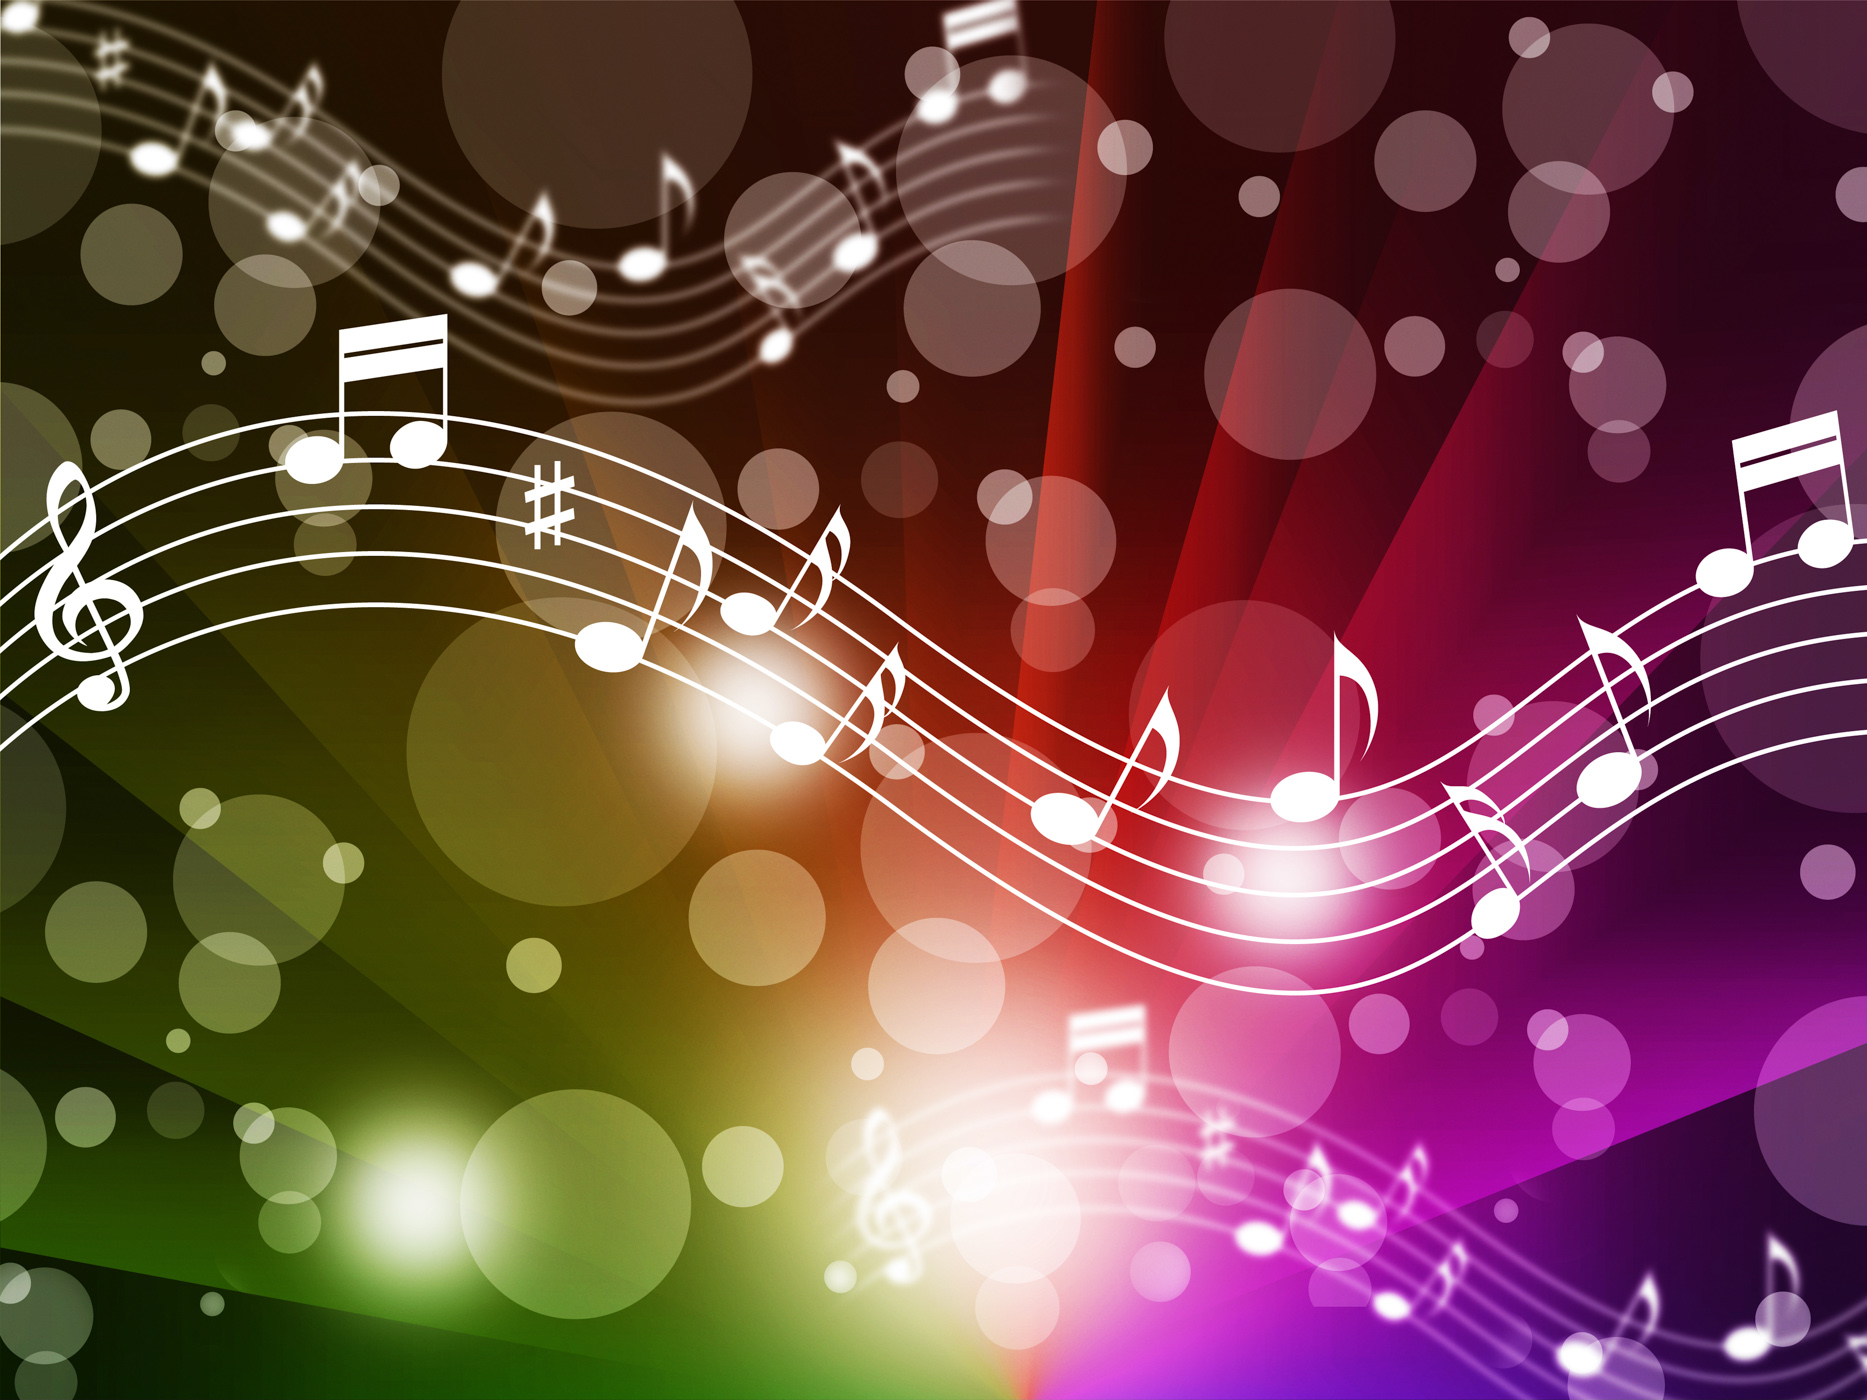 Music Background Images: Free Photo: Music Background Meaning Singing Instruments